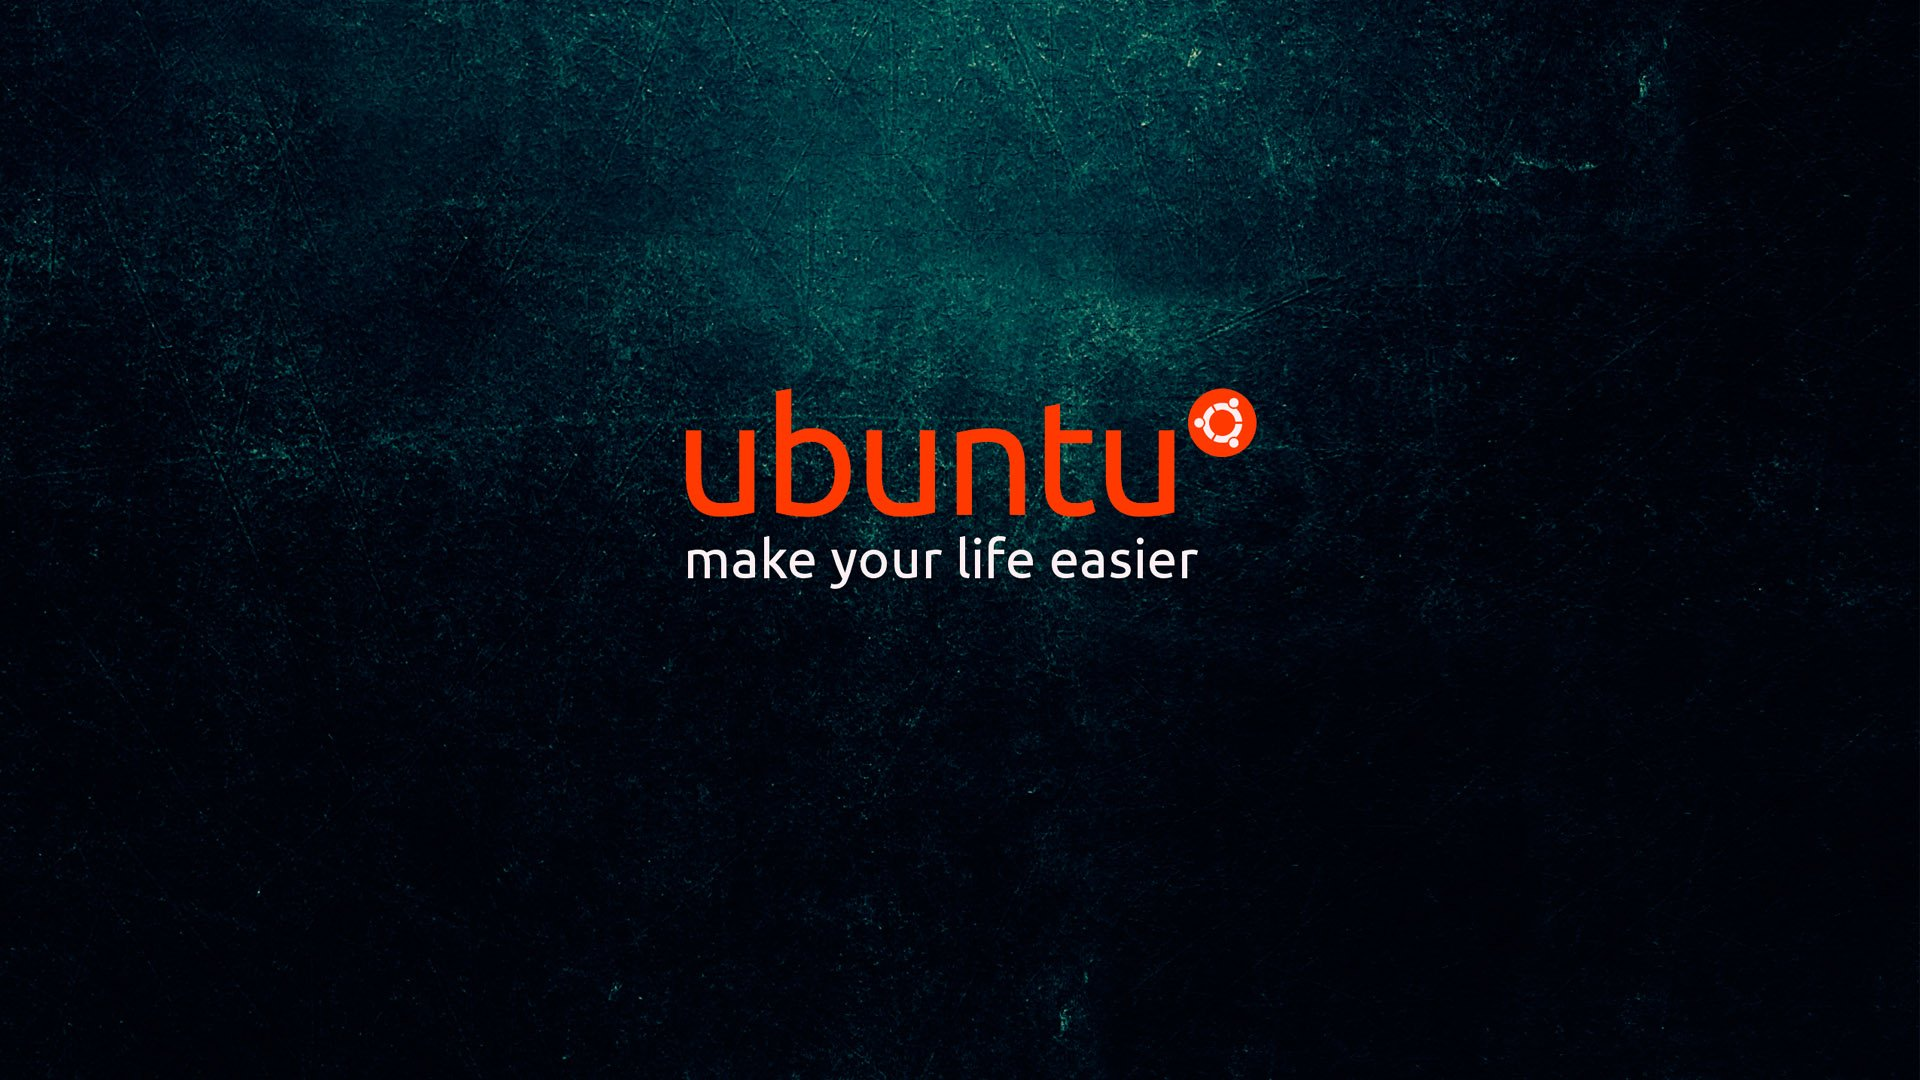 Best Linux Wallpapers 1920x1080